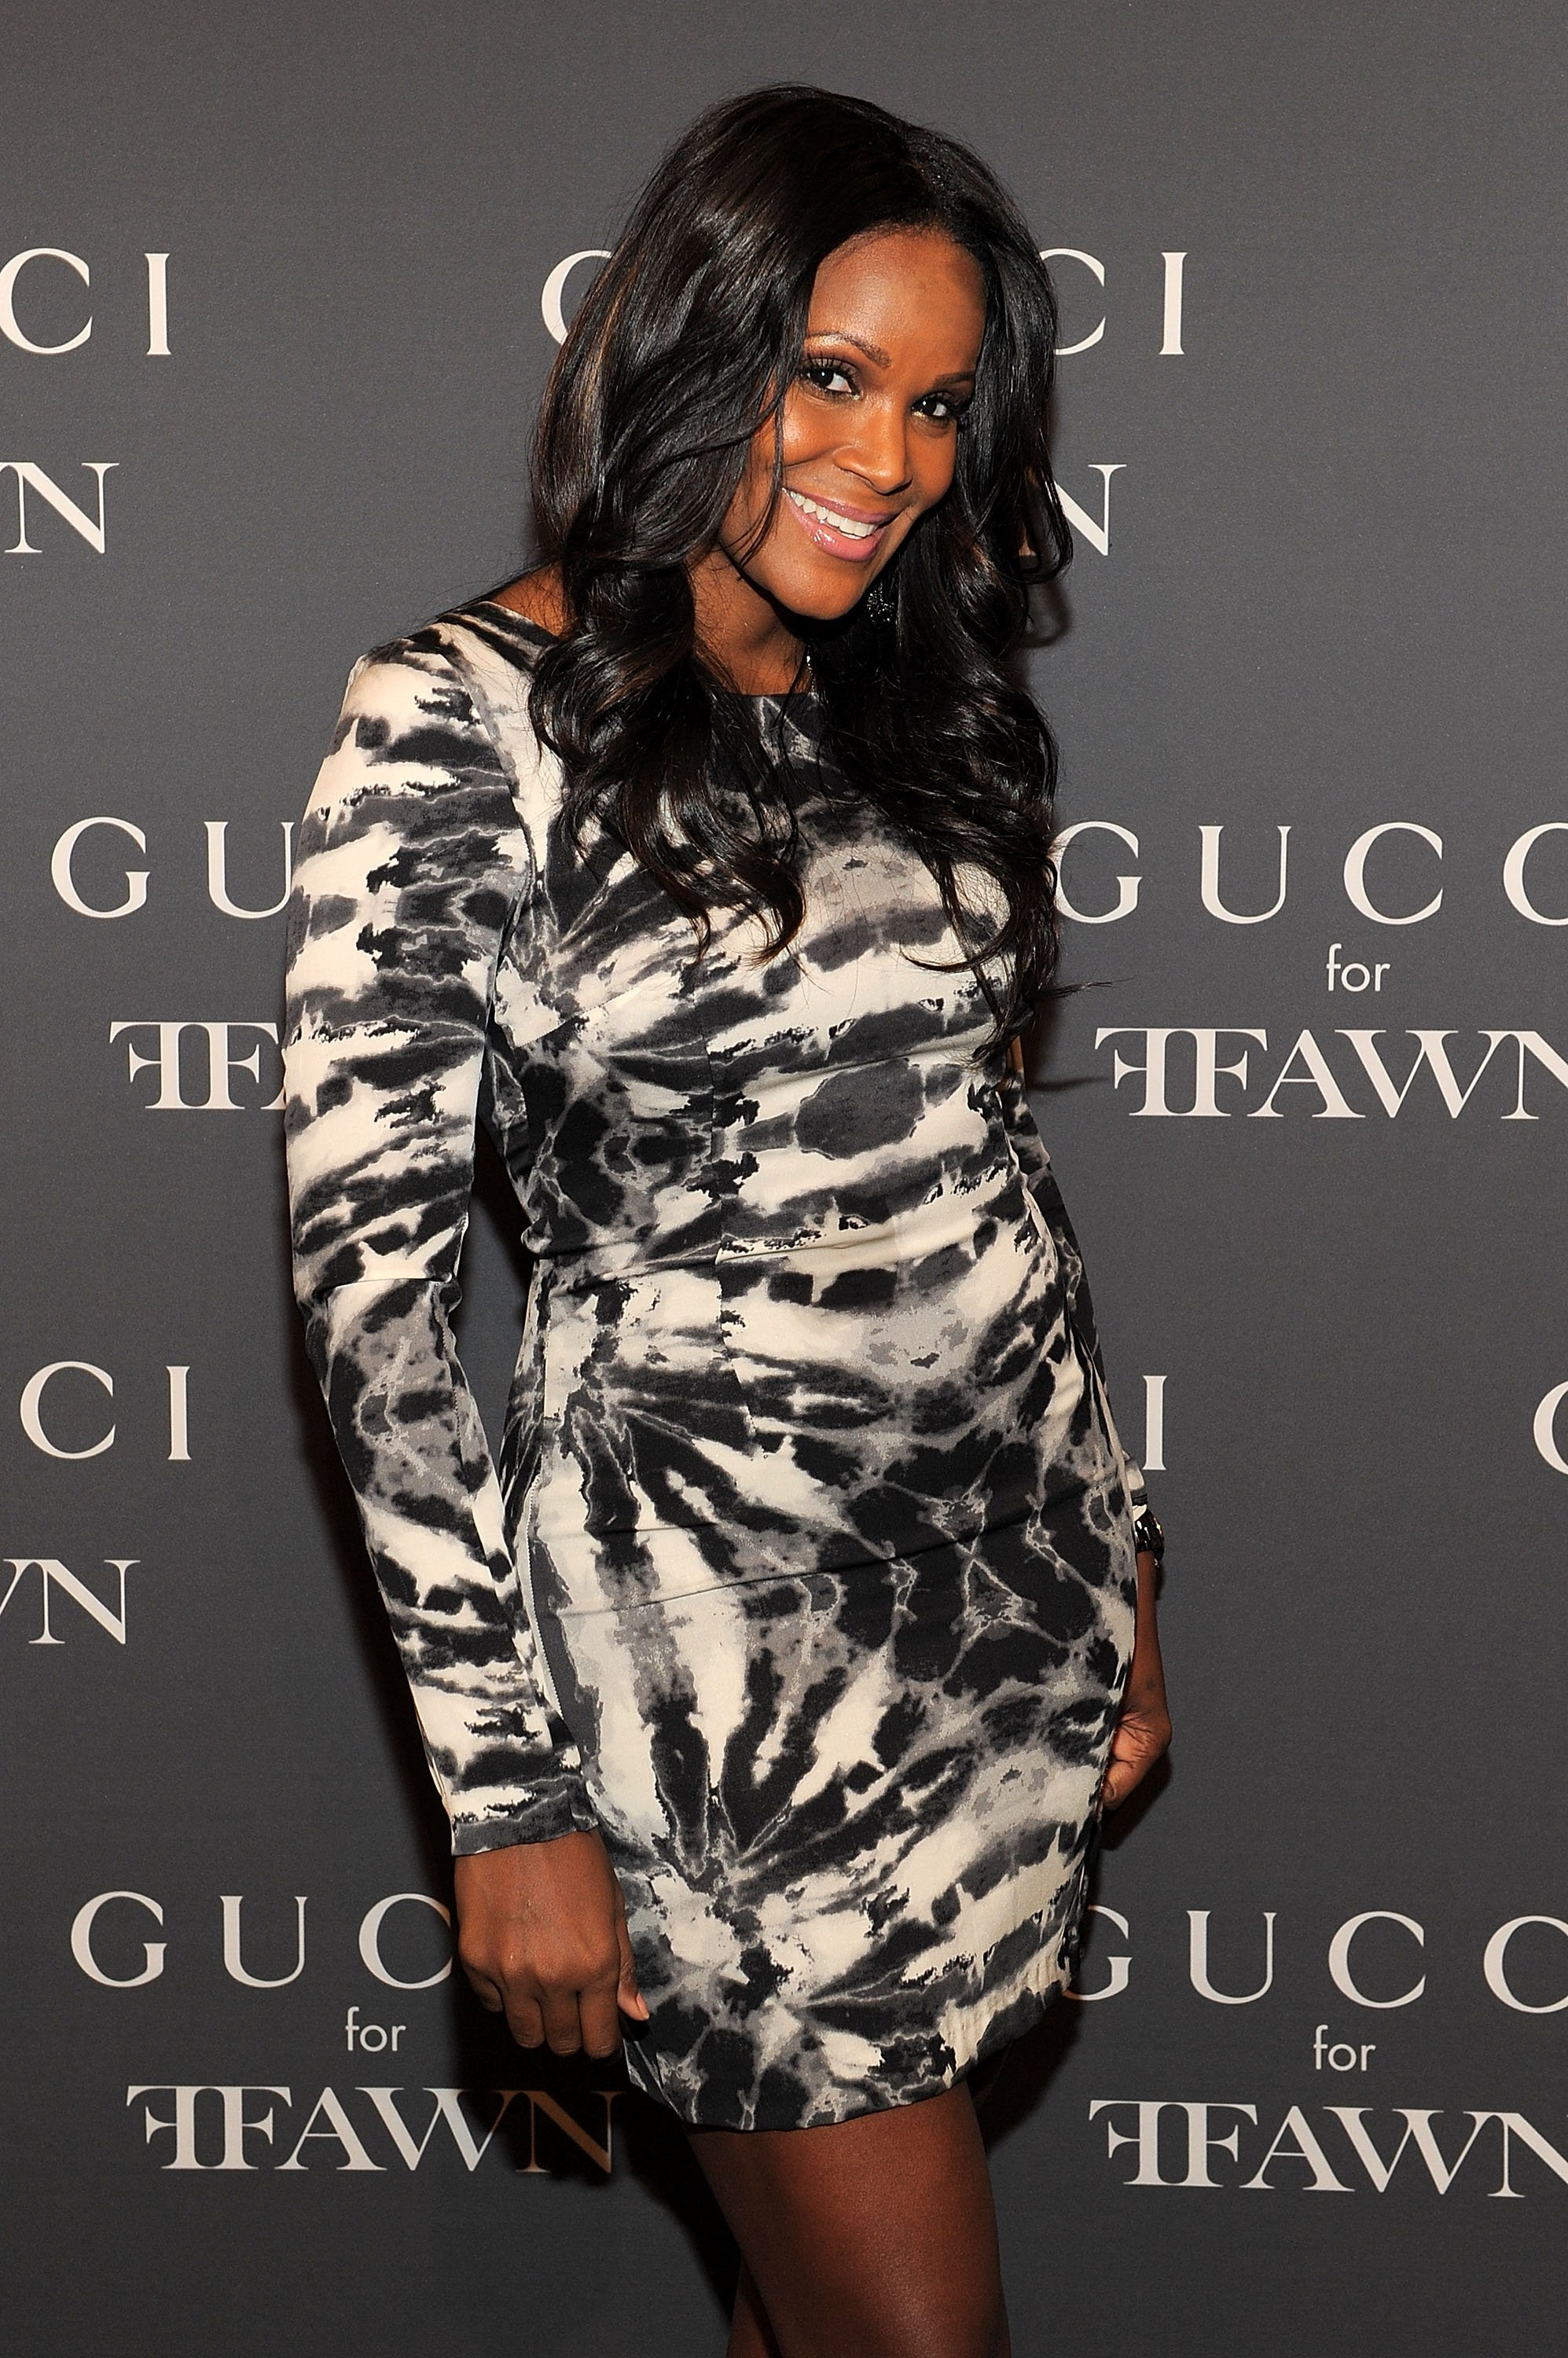 Tameka Foster attending a Gucci event in New York in September 2010. | Photo: Getty Images